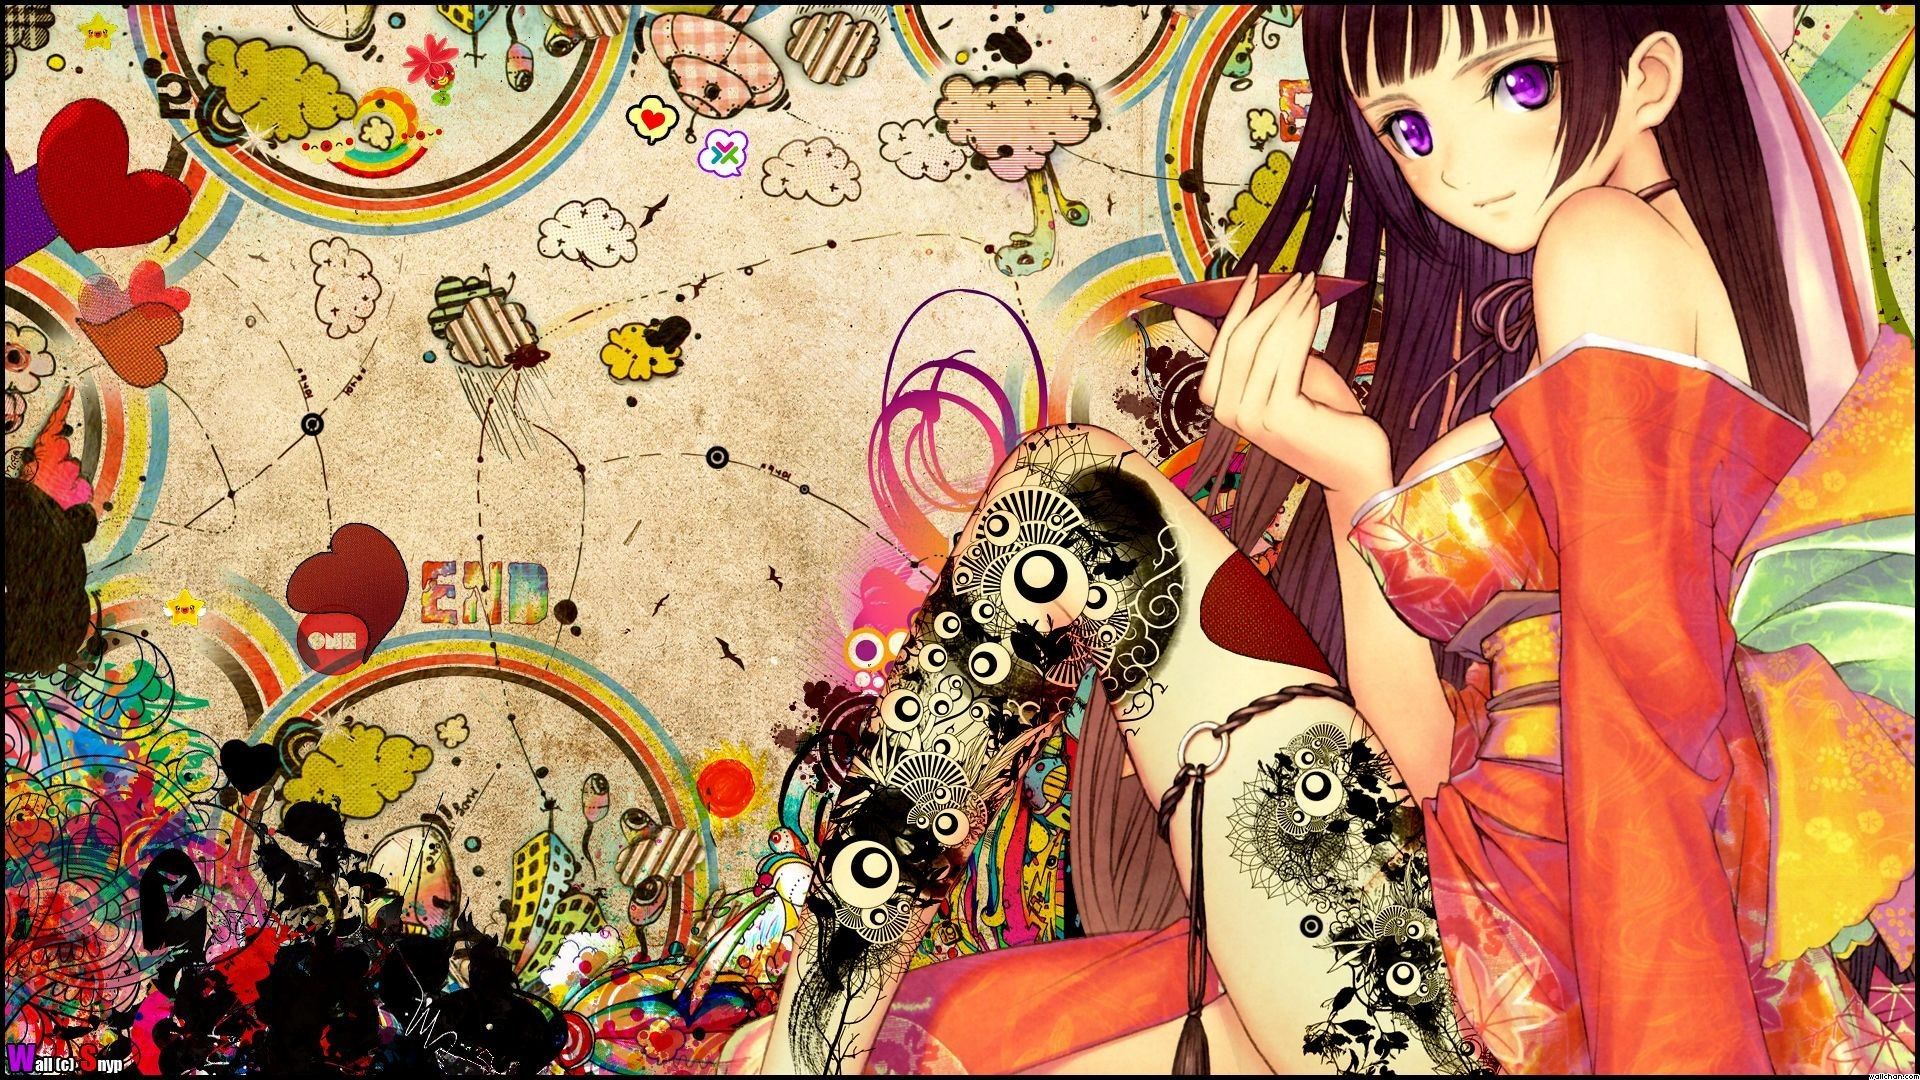 Res: 1920x1080, Anime Girl Japanese Tattoo Wallpaper, Size:    AmazingPict.com -  HD Wallpapers